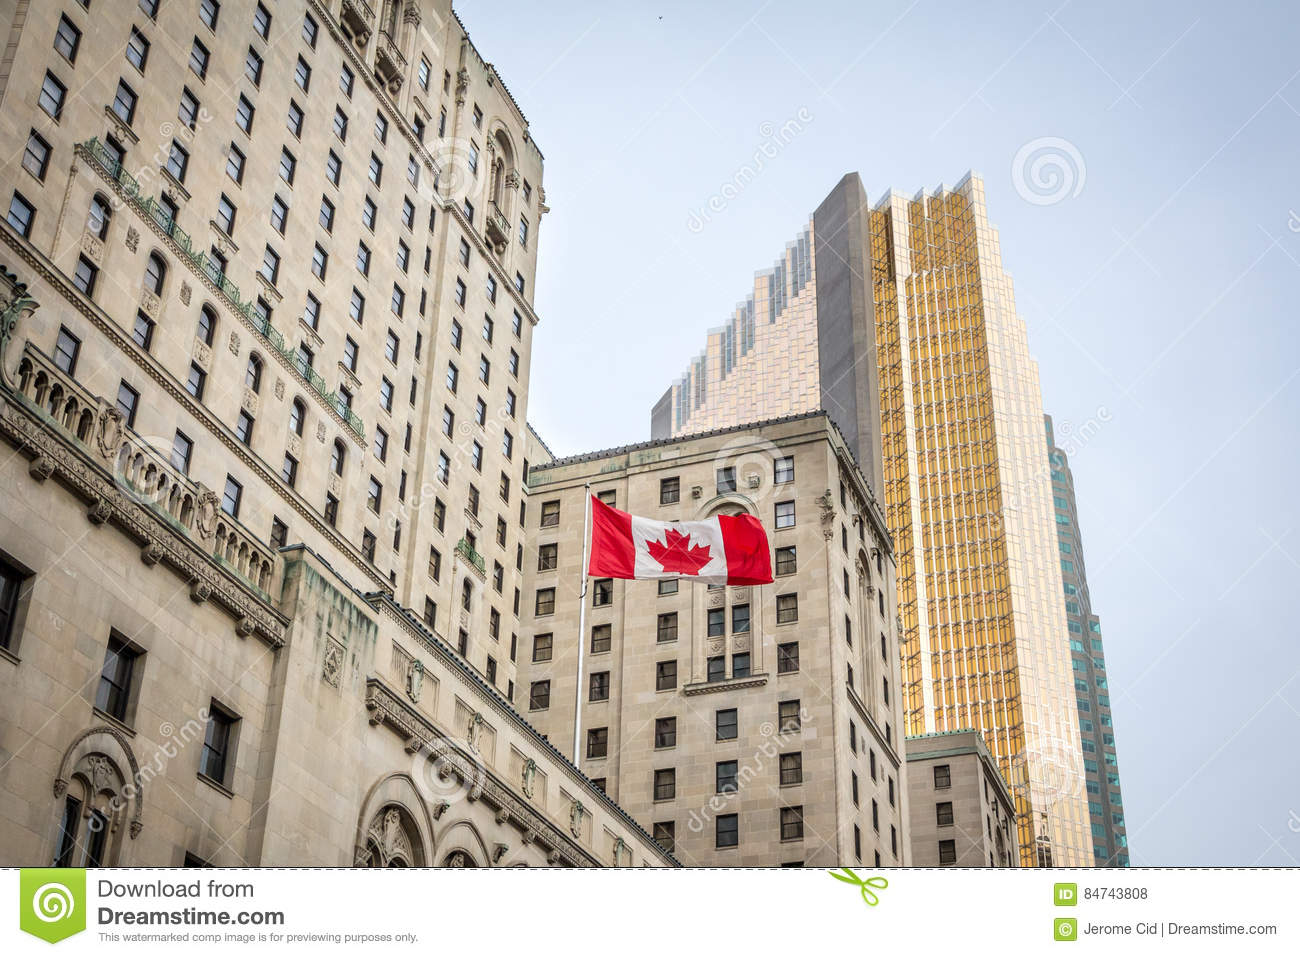 Canadian flag in front of a business building and an older skyscraper in Toronto, Ontario, Canada